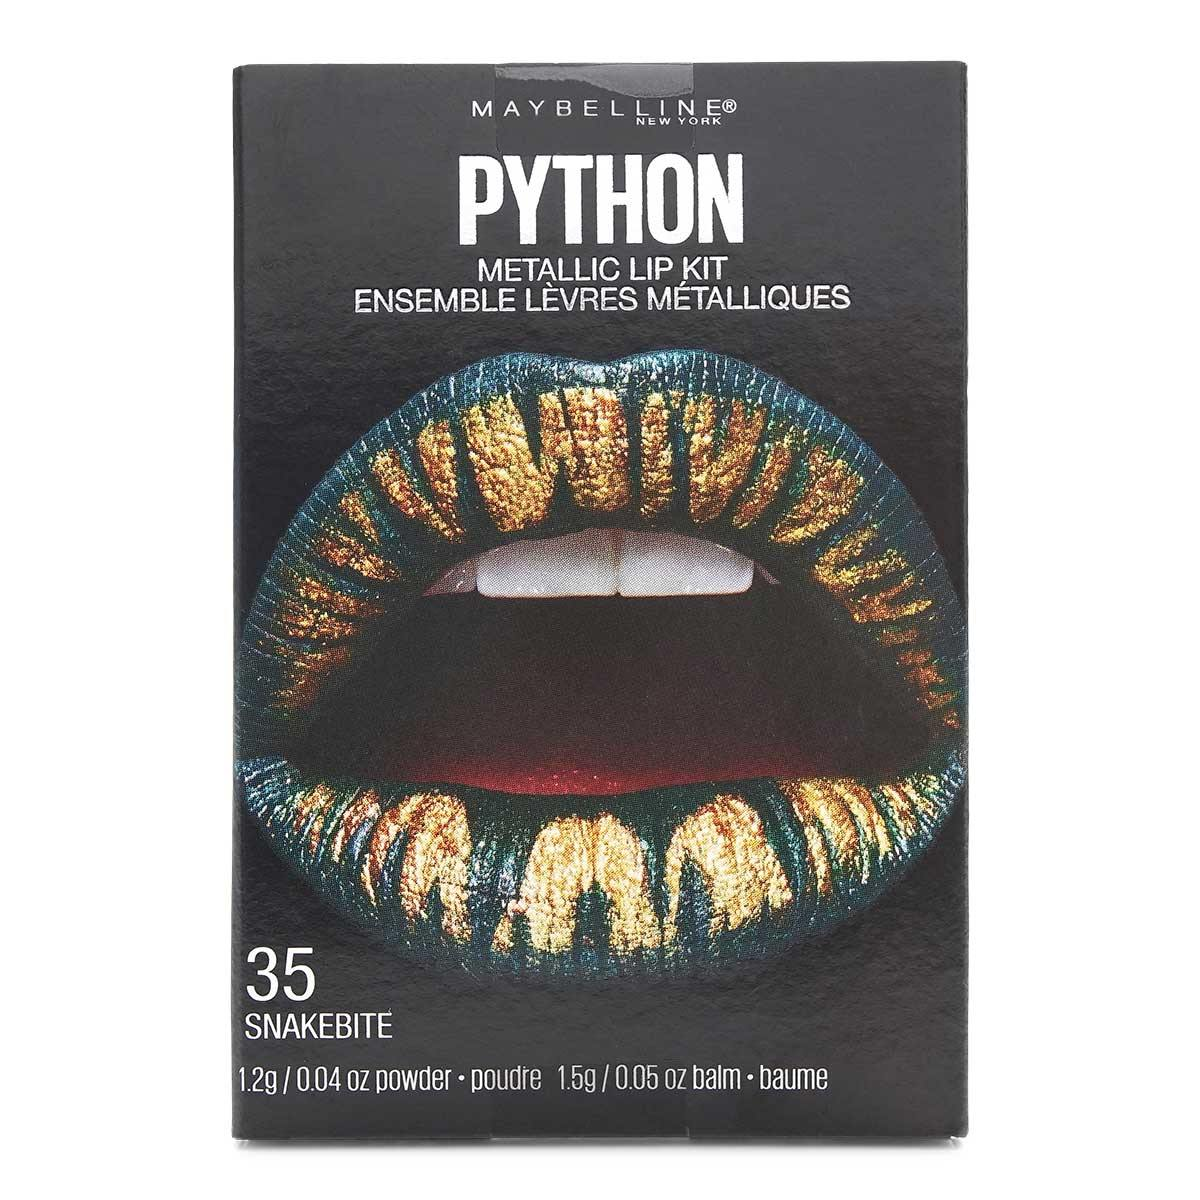 MAYBELLINE PYTHON LIP KIT (24/cs)